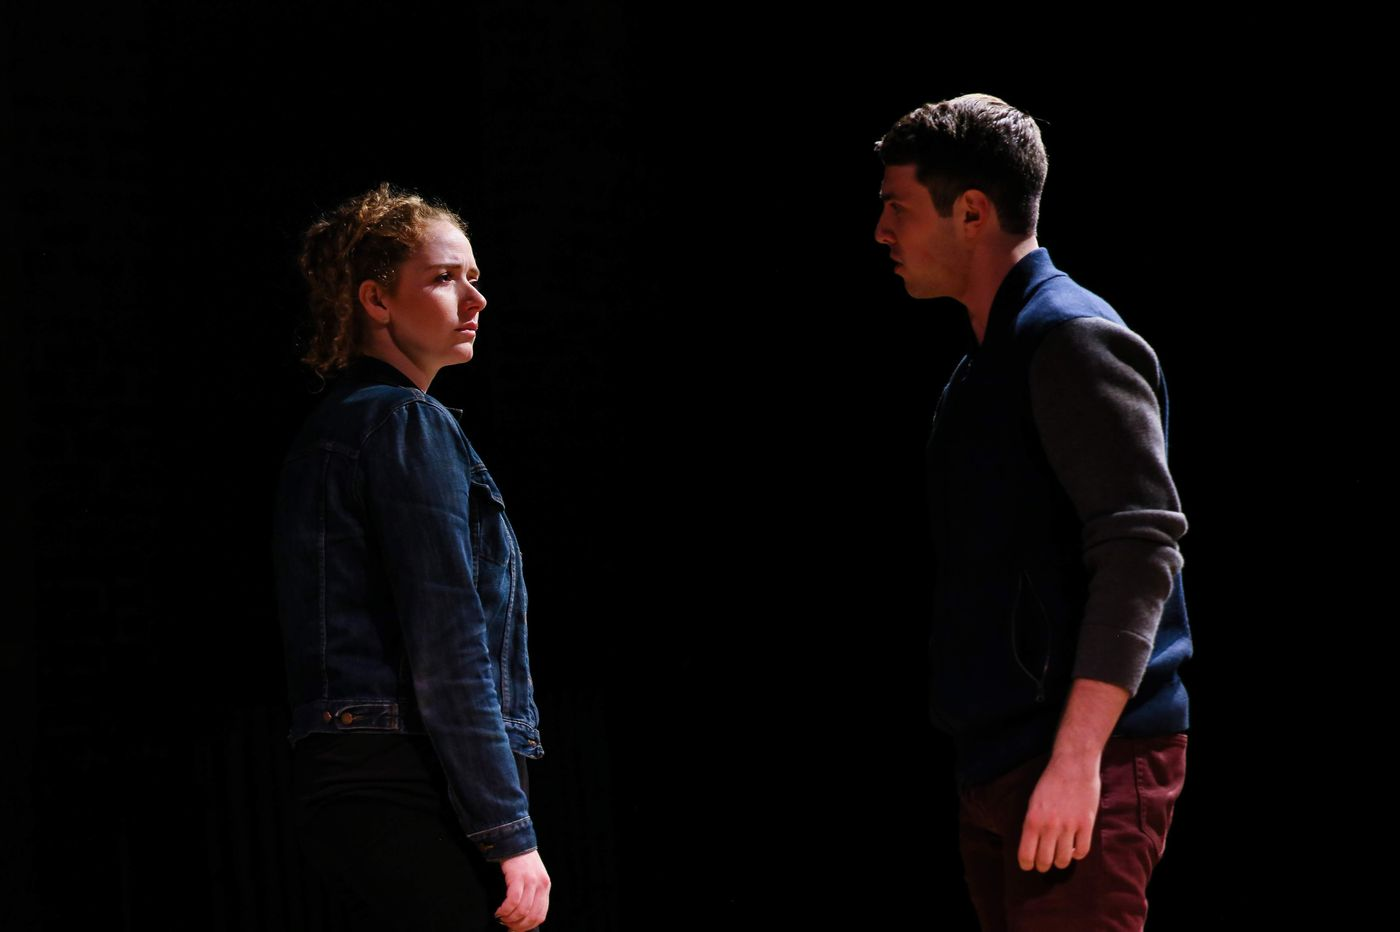 'Pure Medea' at Automatic Arts: Confusion without grandeur or dignity